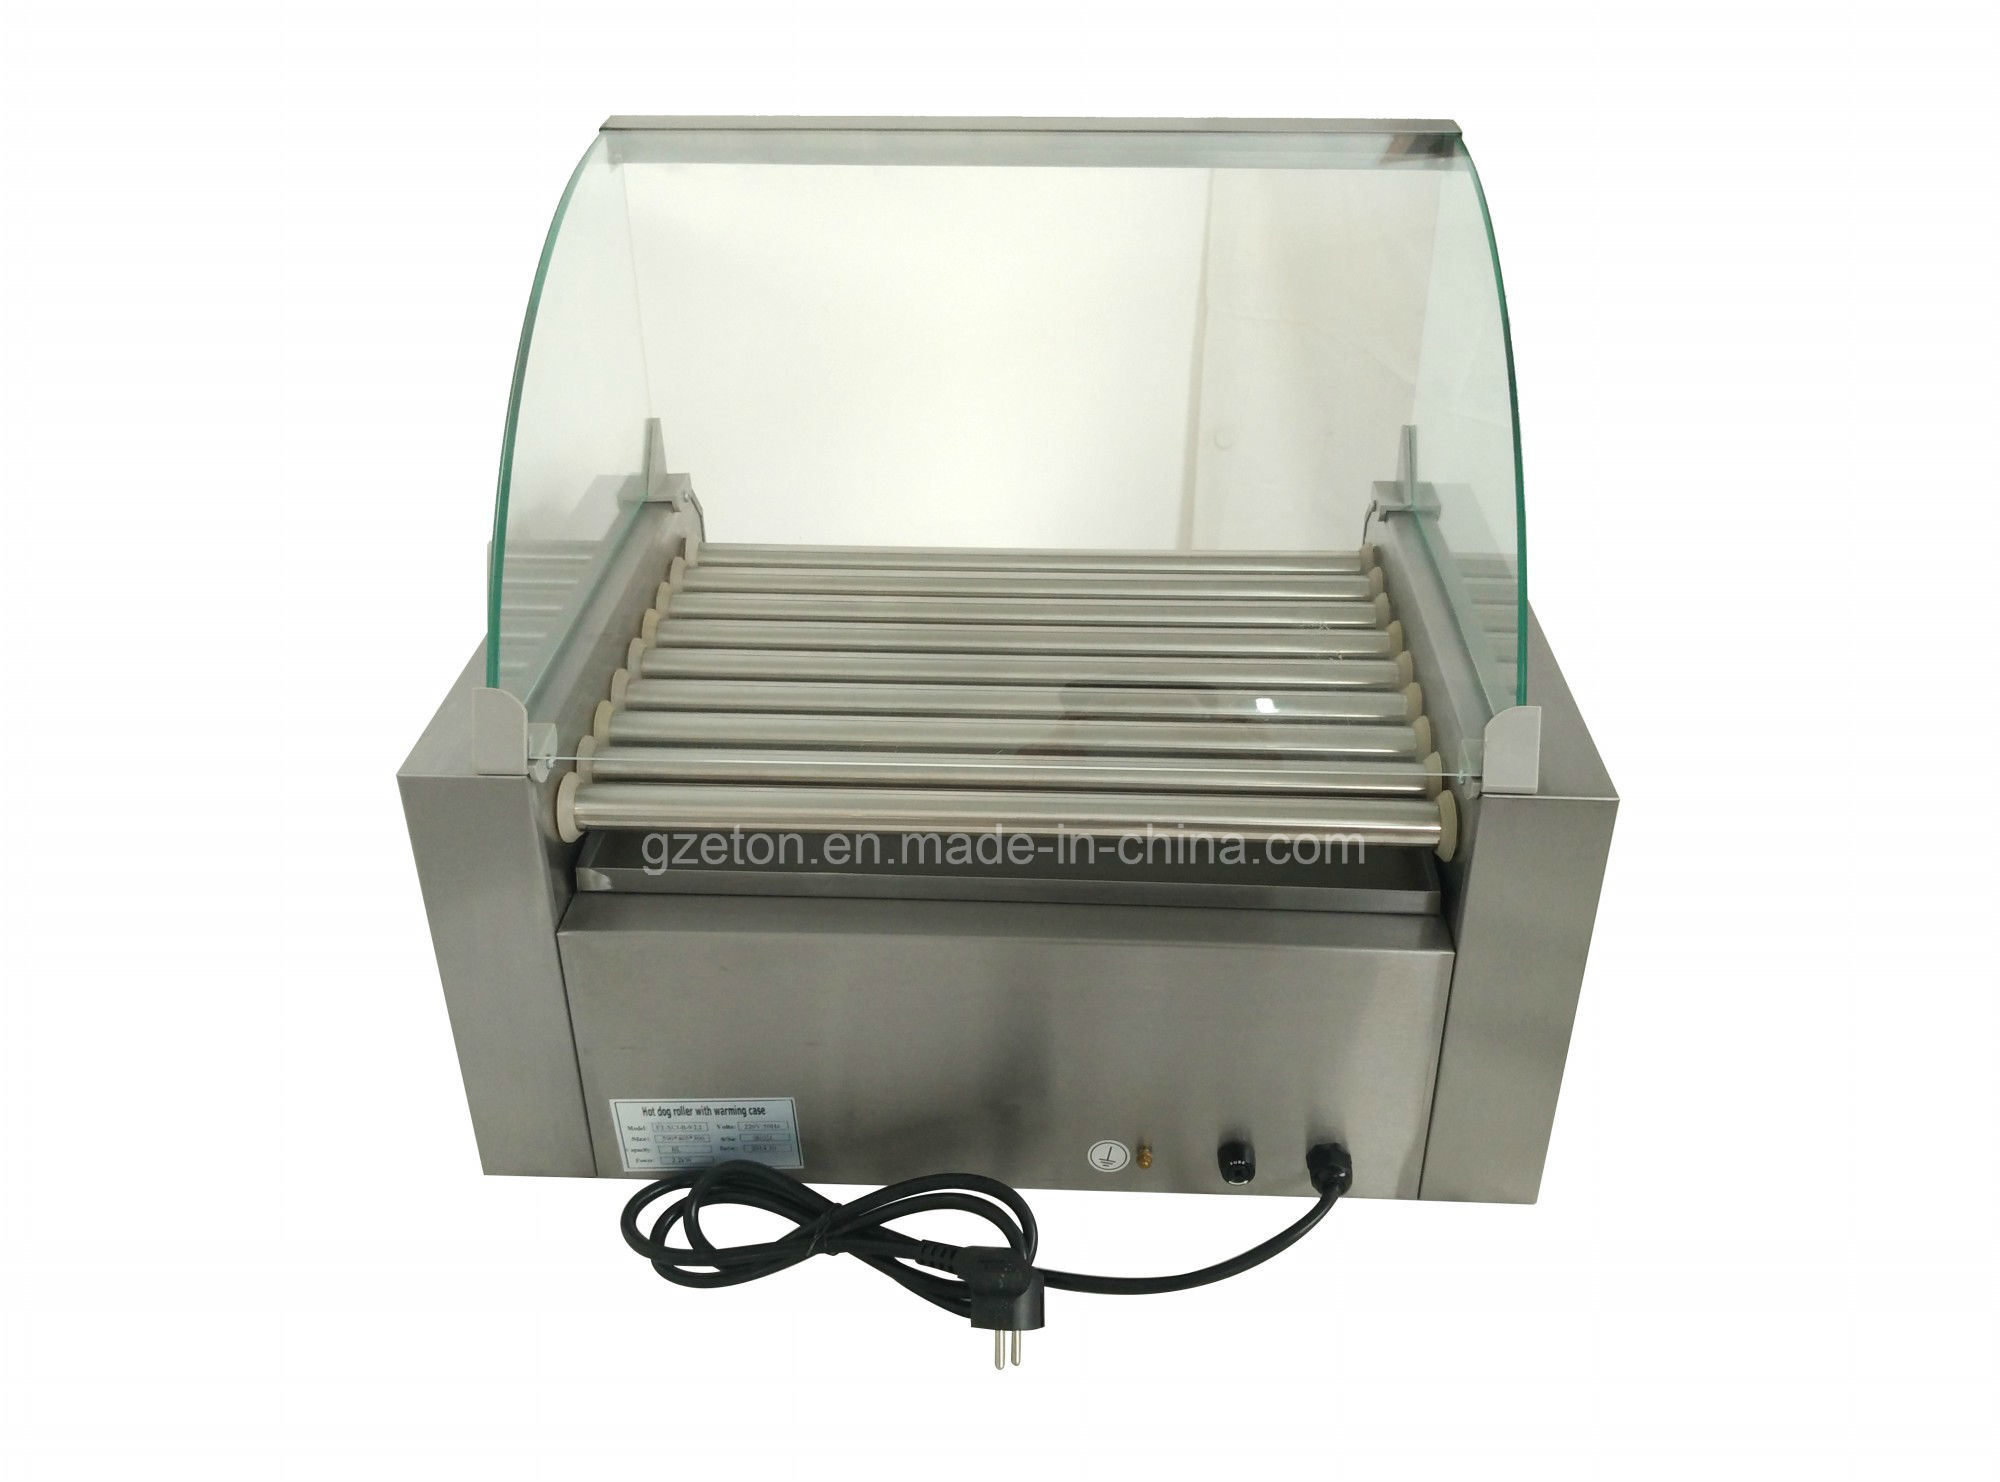 CE Approved 9 Roller Hot-Dog Maker with Warming Case